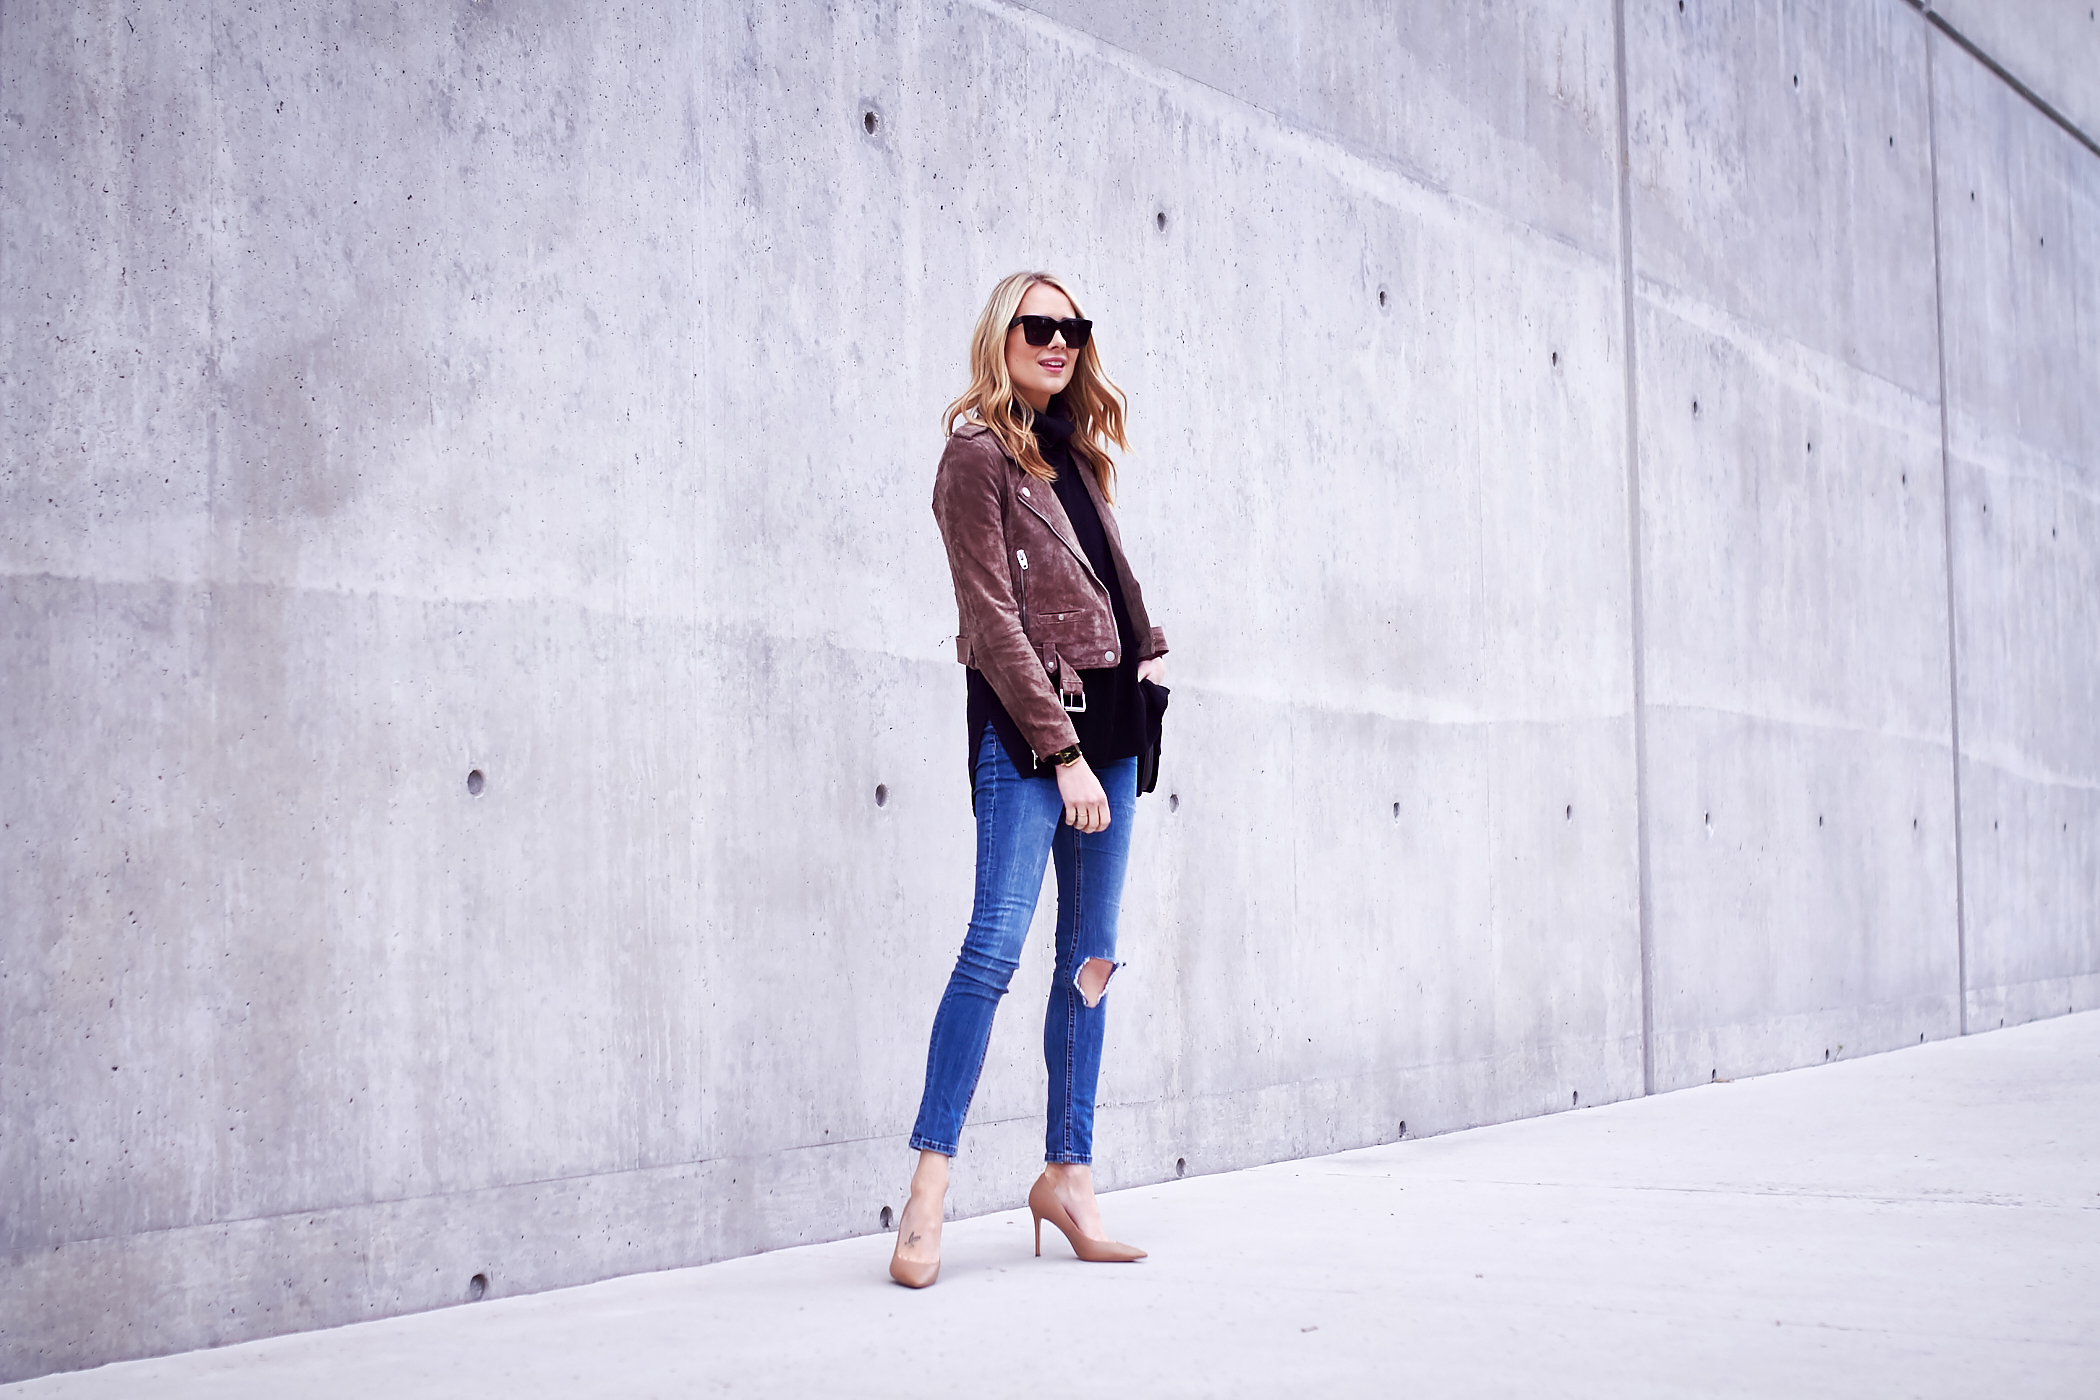 fashion-jackson-blanknyc-morning-suede-moto-jacket-black-sweater-ripped-denim-jeans-black-sunglasses-nude-pumps